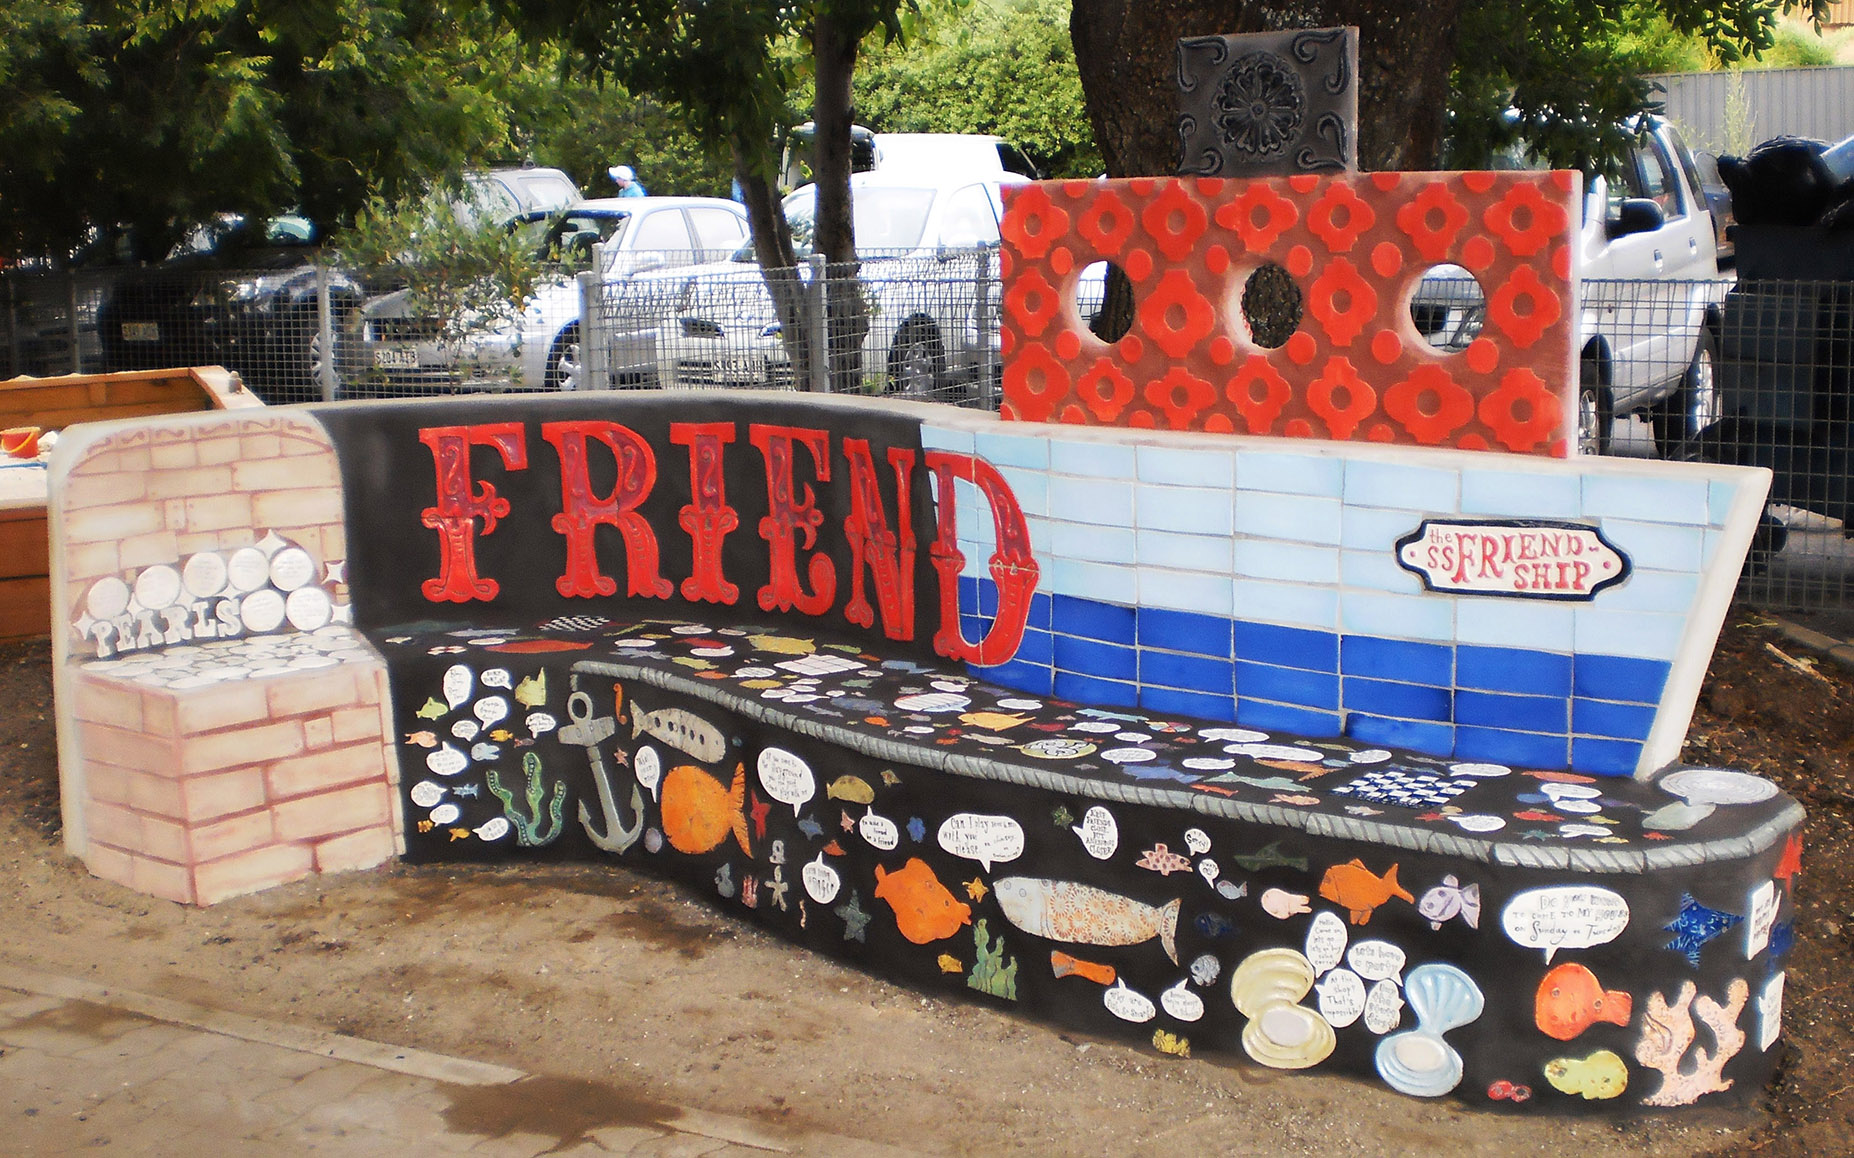 Copy of Friend-ship bench